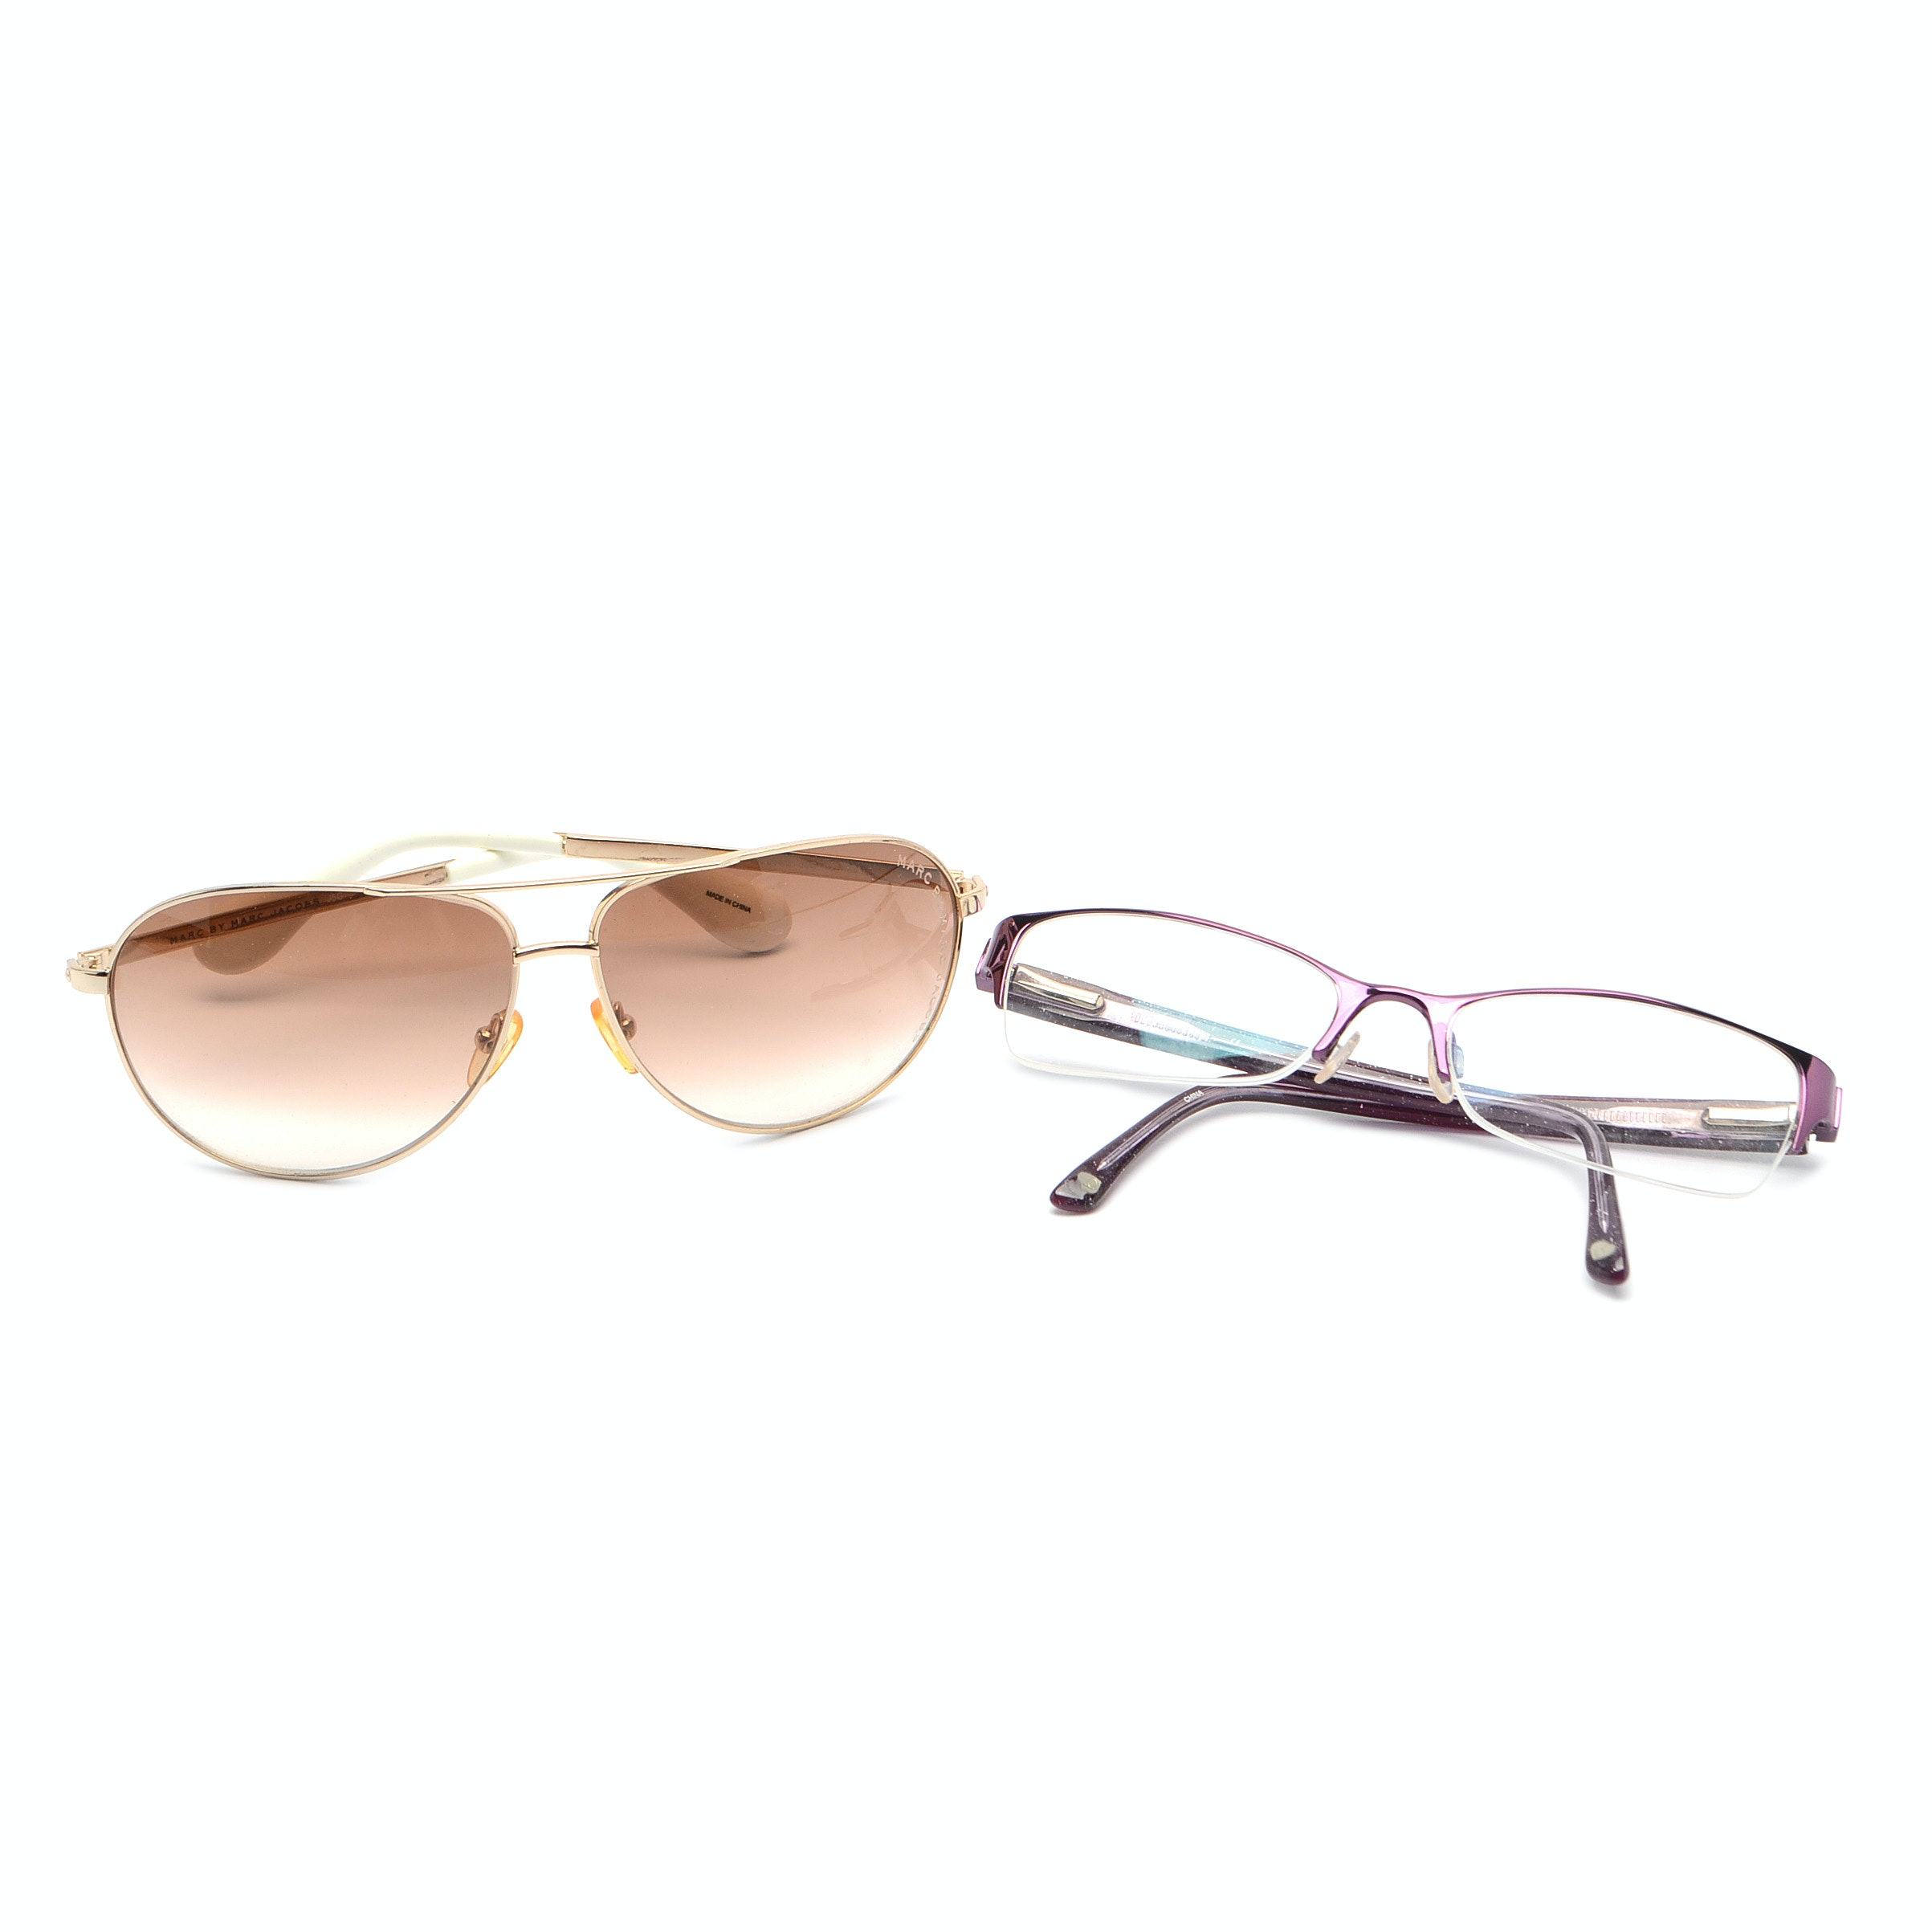 Glasses by Marc Jacobs and Bebe